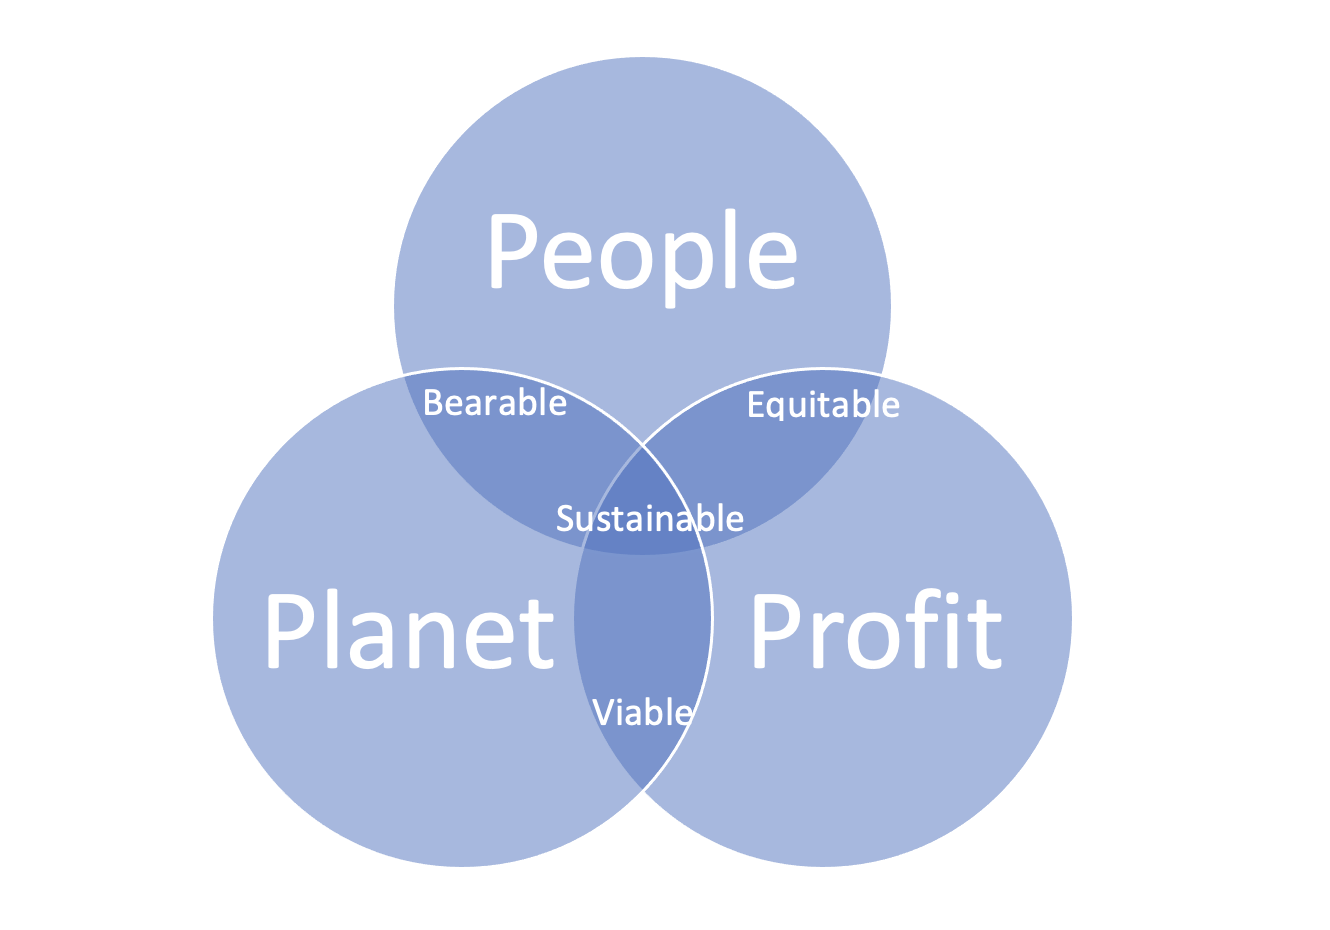 A Venn Diagram with three intersection elements. People, Planet, and Profit. The intersection of People and Planet is Bearable. People and Profit is Equitable. Planet and Profit is Viable. All three is Sustainable.